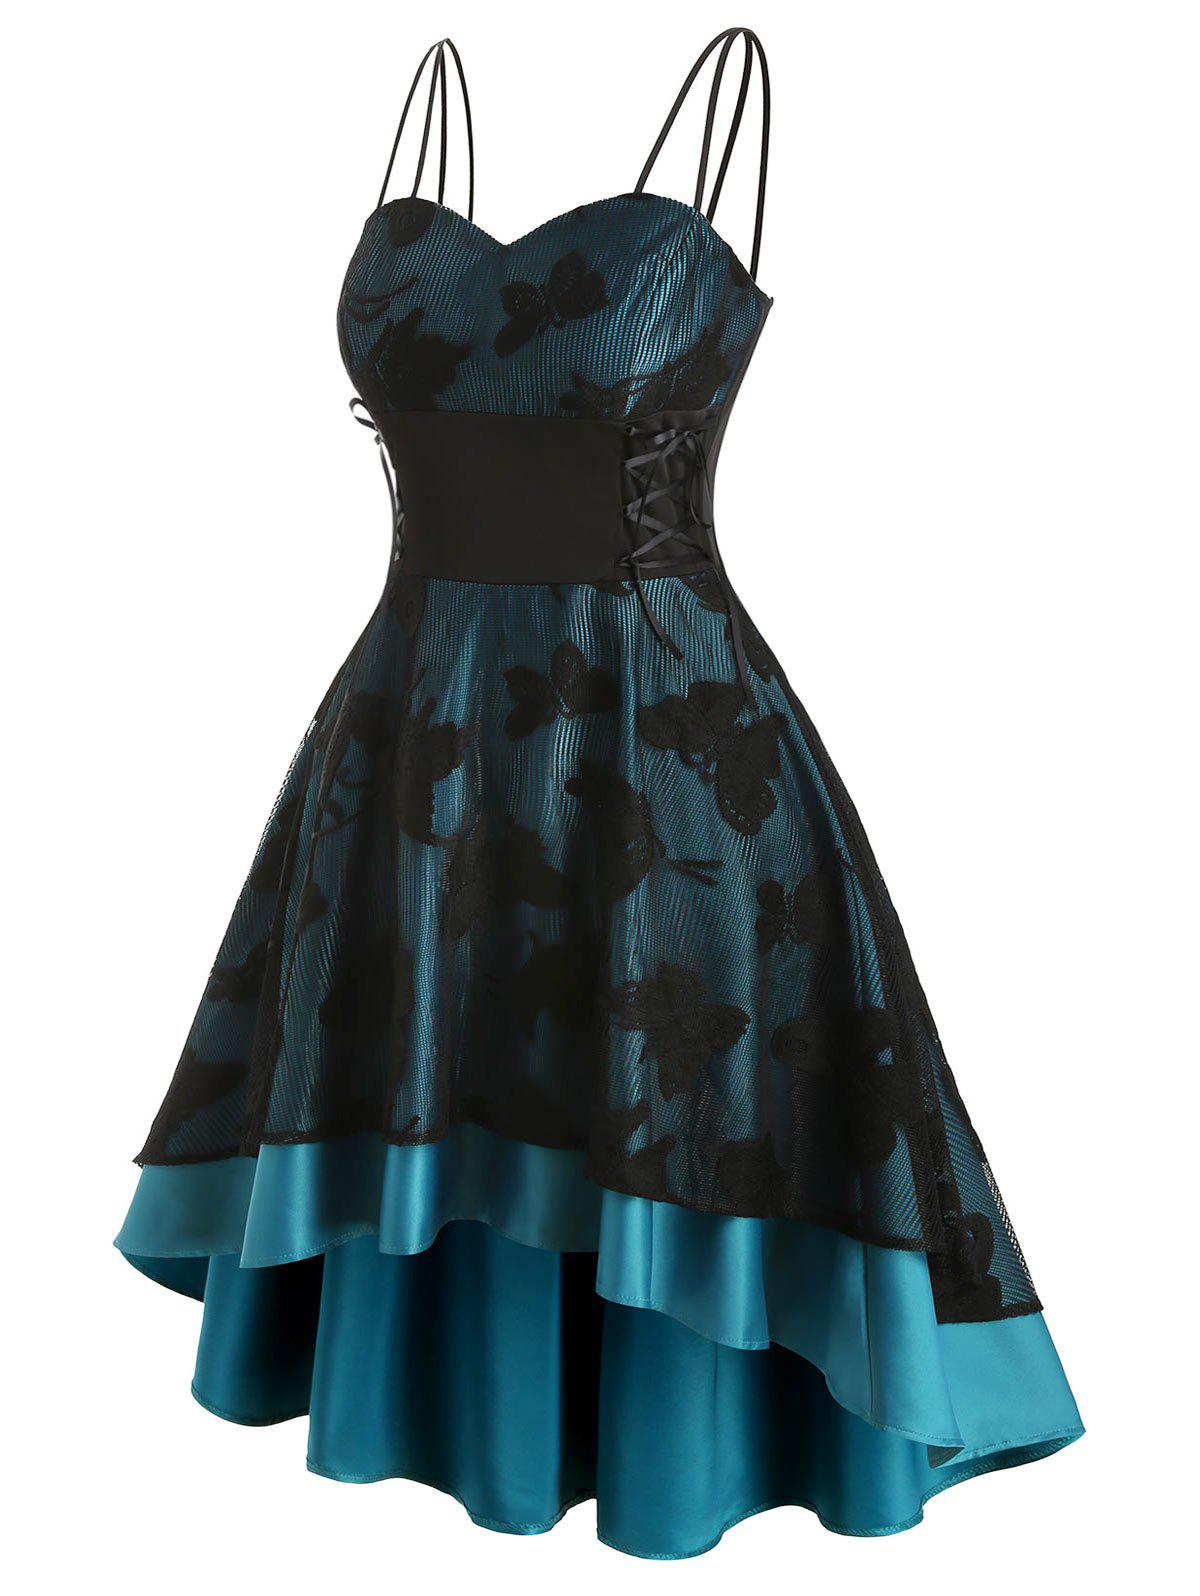 Plus Size Lace Up Butterfly High Low Party Dress - PEACOCK BLUE 5X